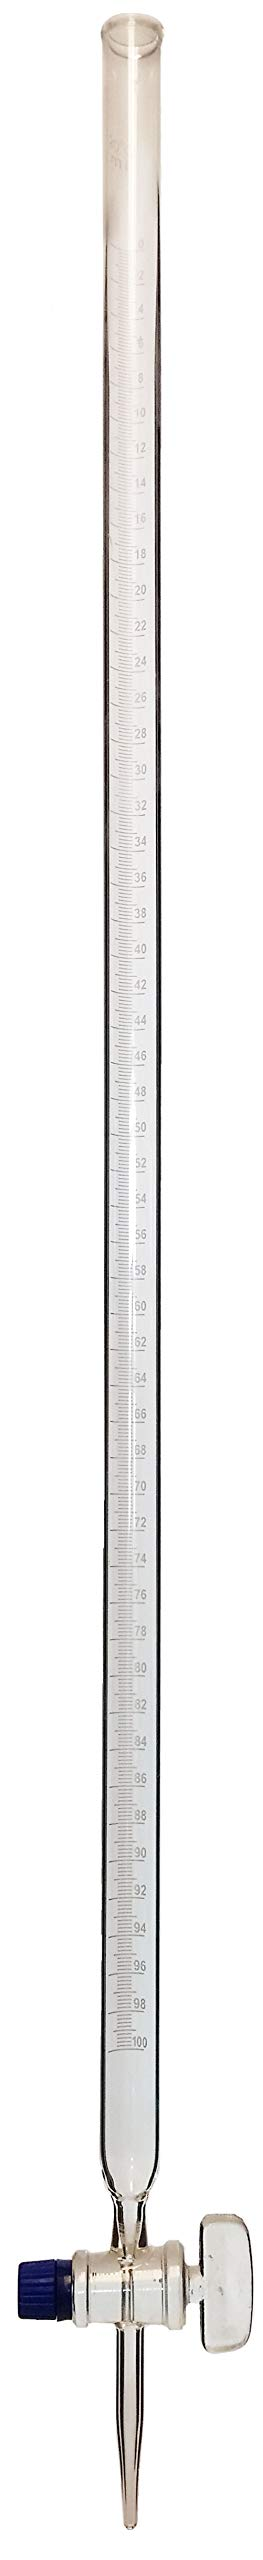 Burette with Ground Glass Stopcock, 100ml, Pack of 5 by GSC